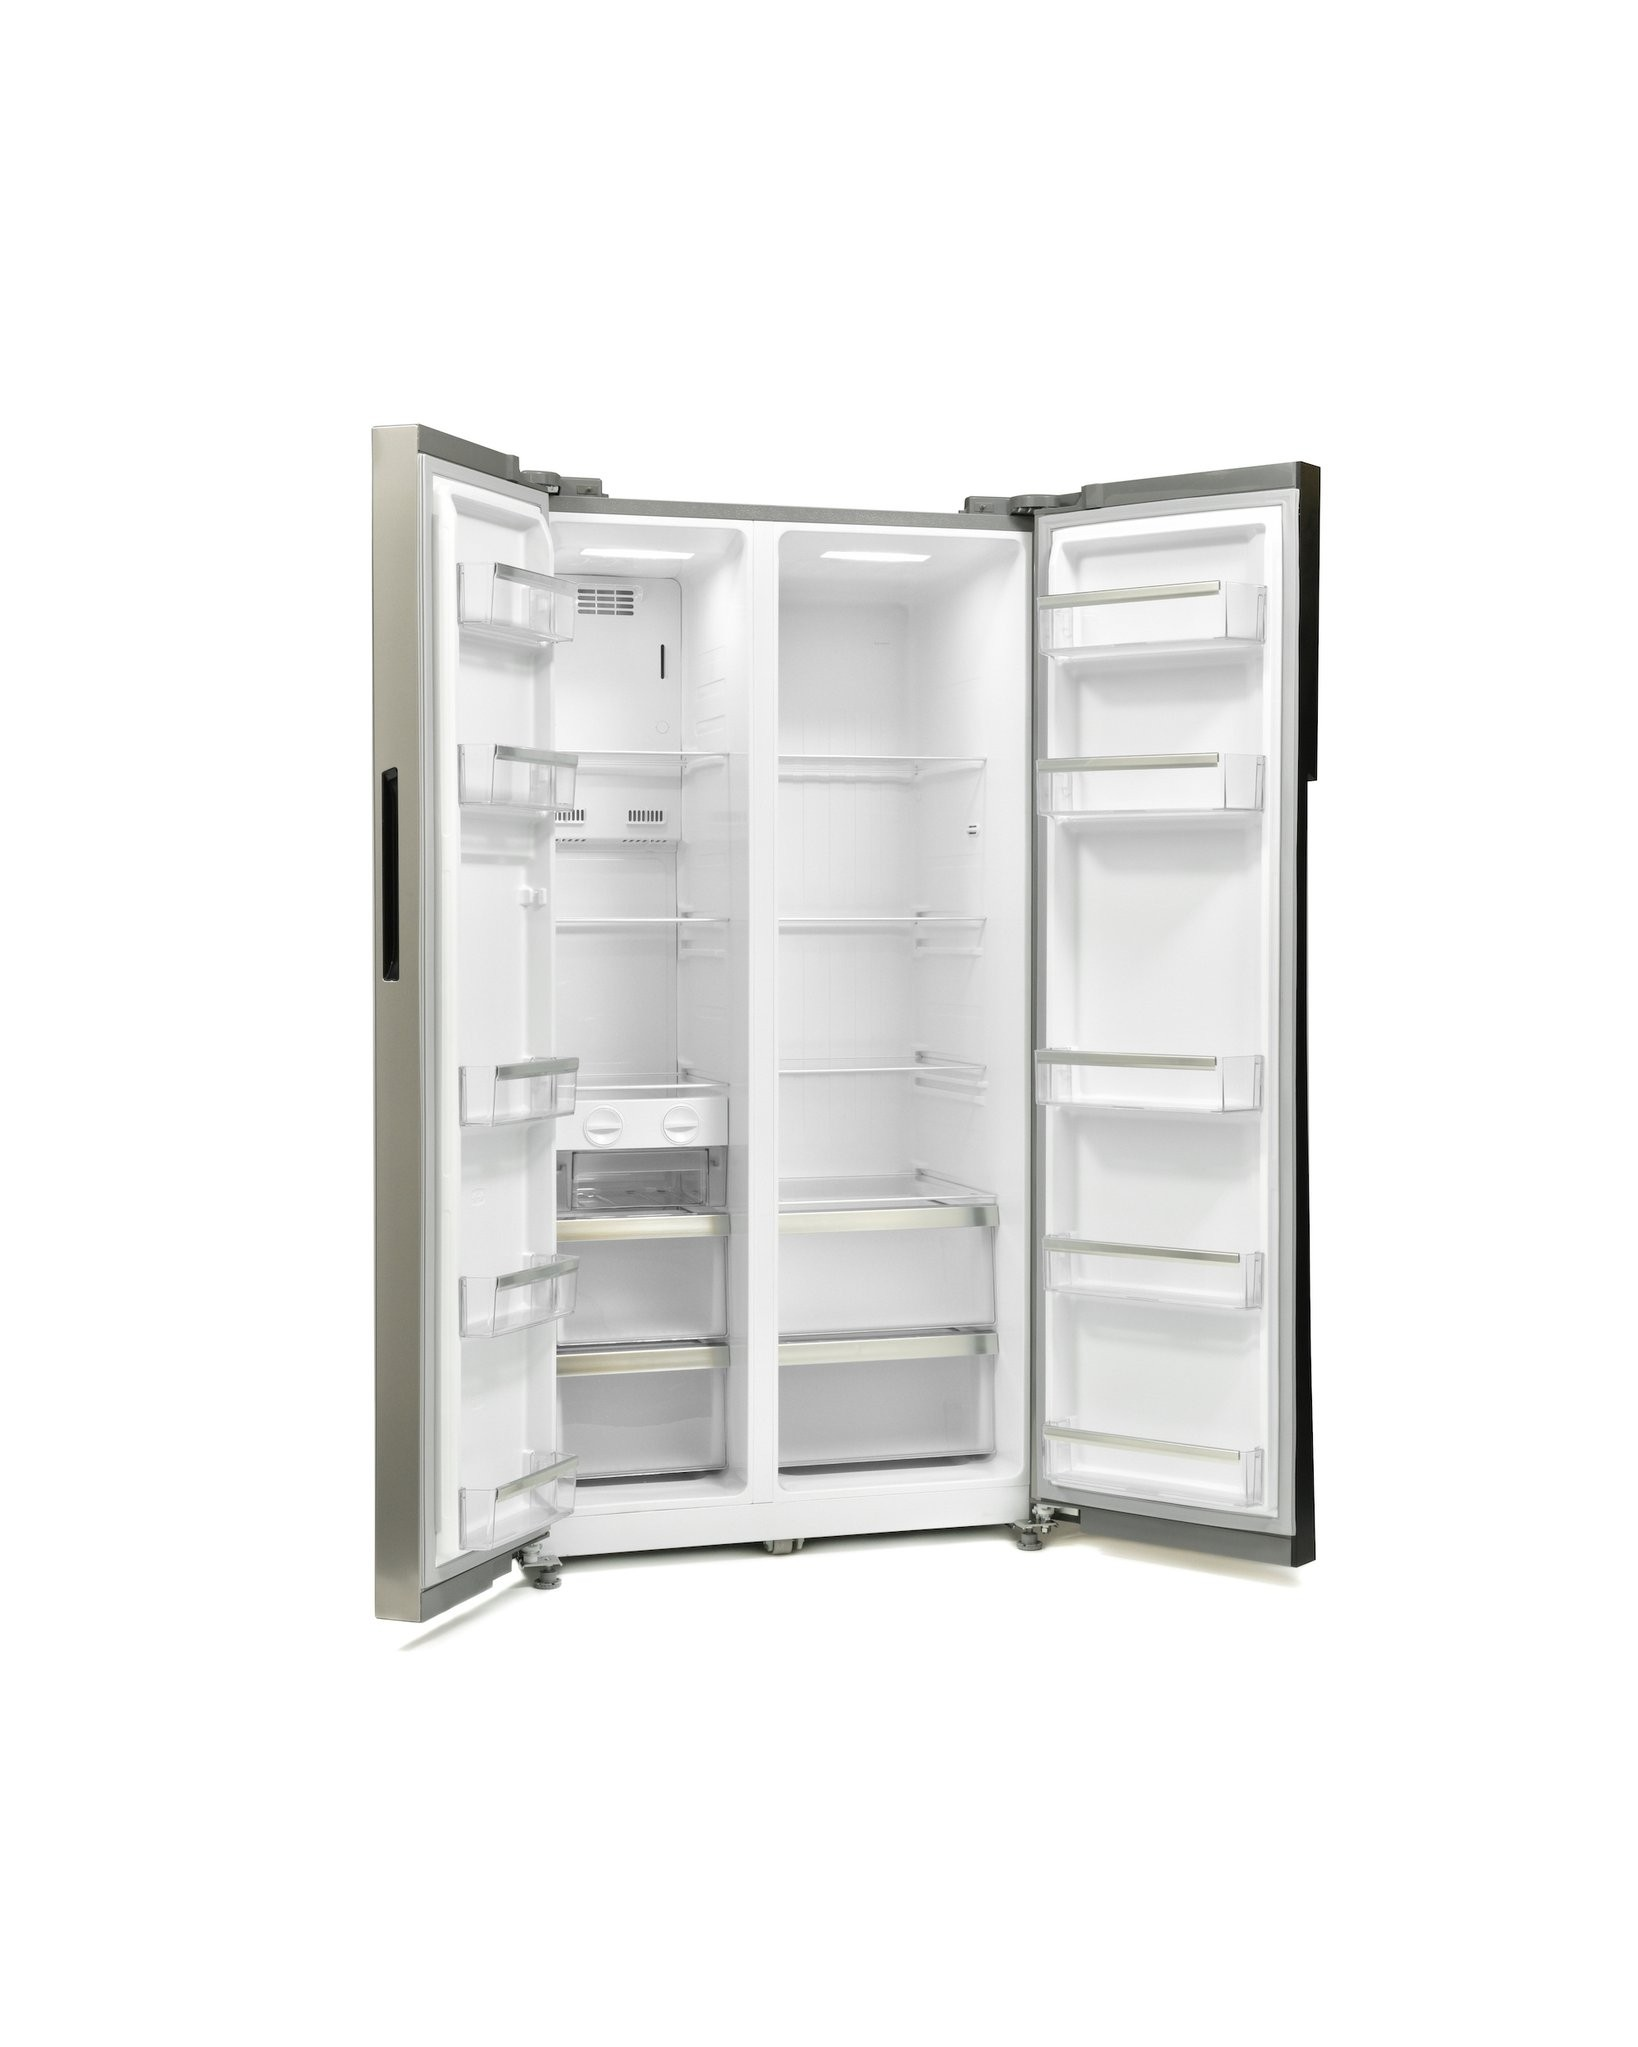 Montpellier M510BX Fridge Freezer